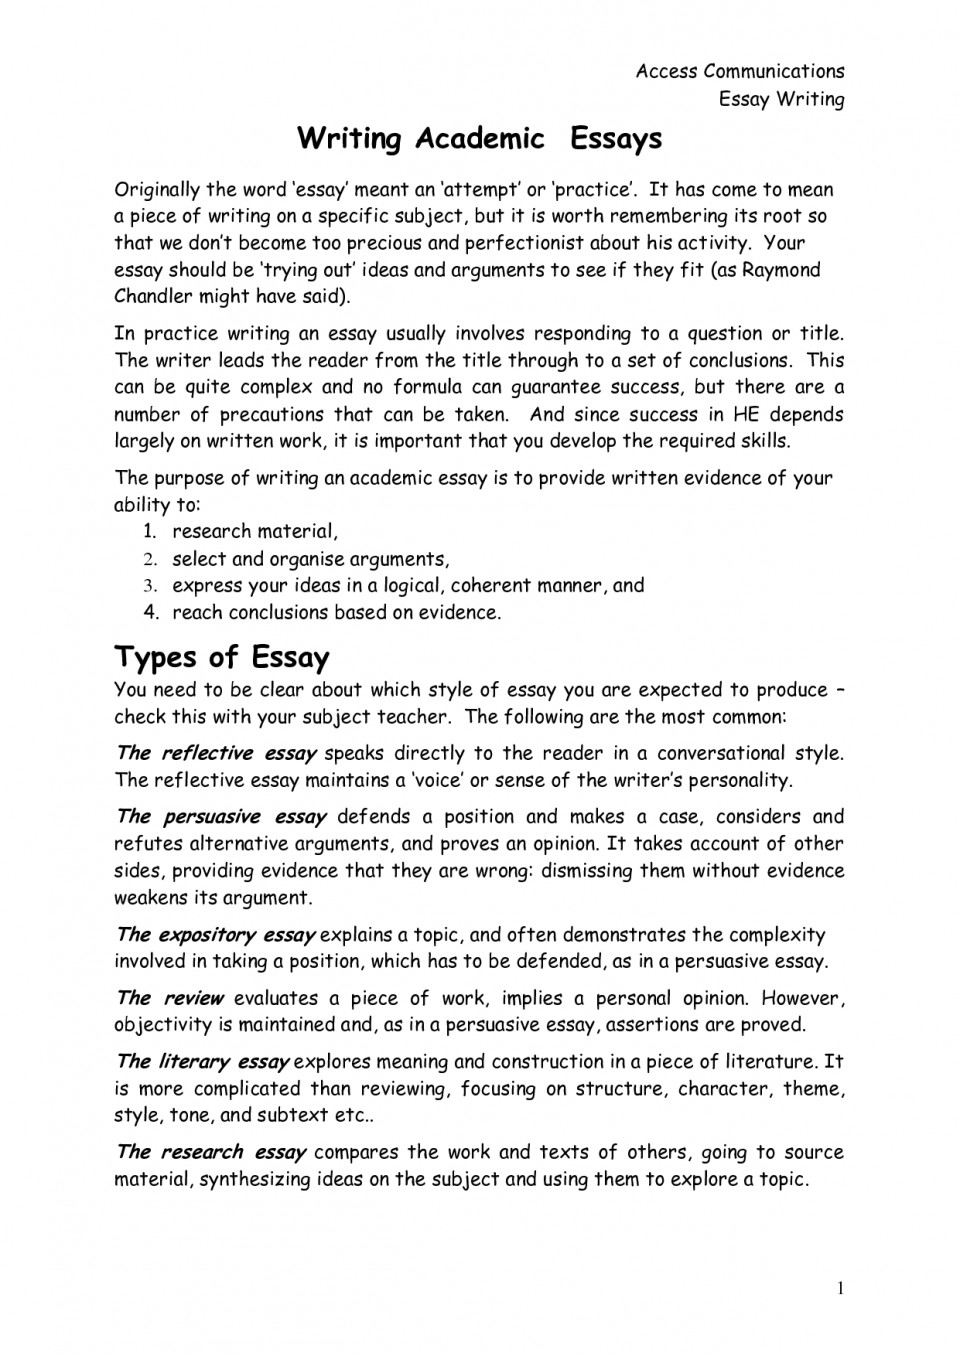 017 Essay Example Write For Me Amazing My Custom Cheap Free 960